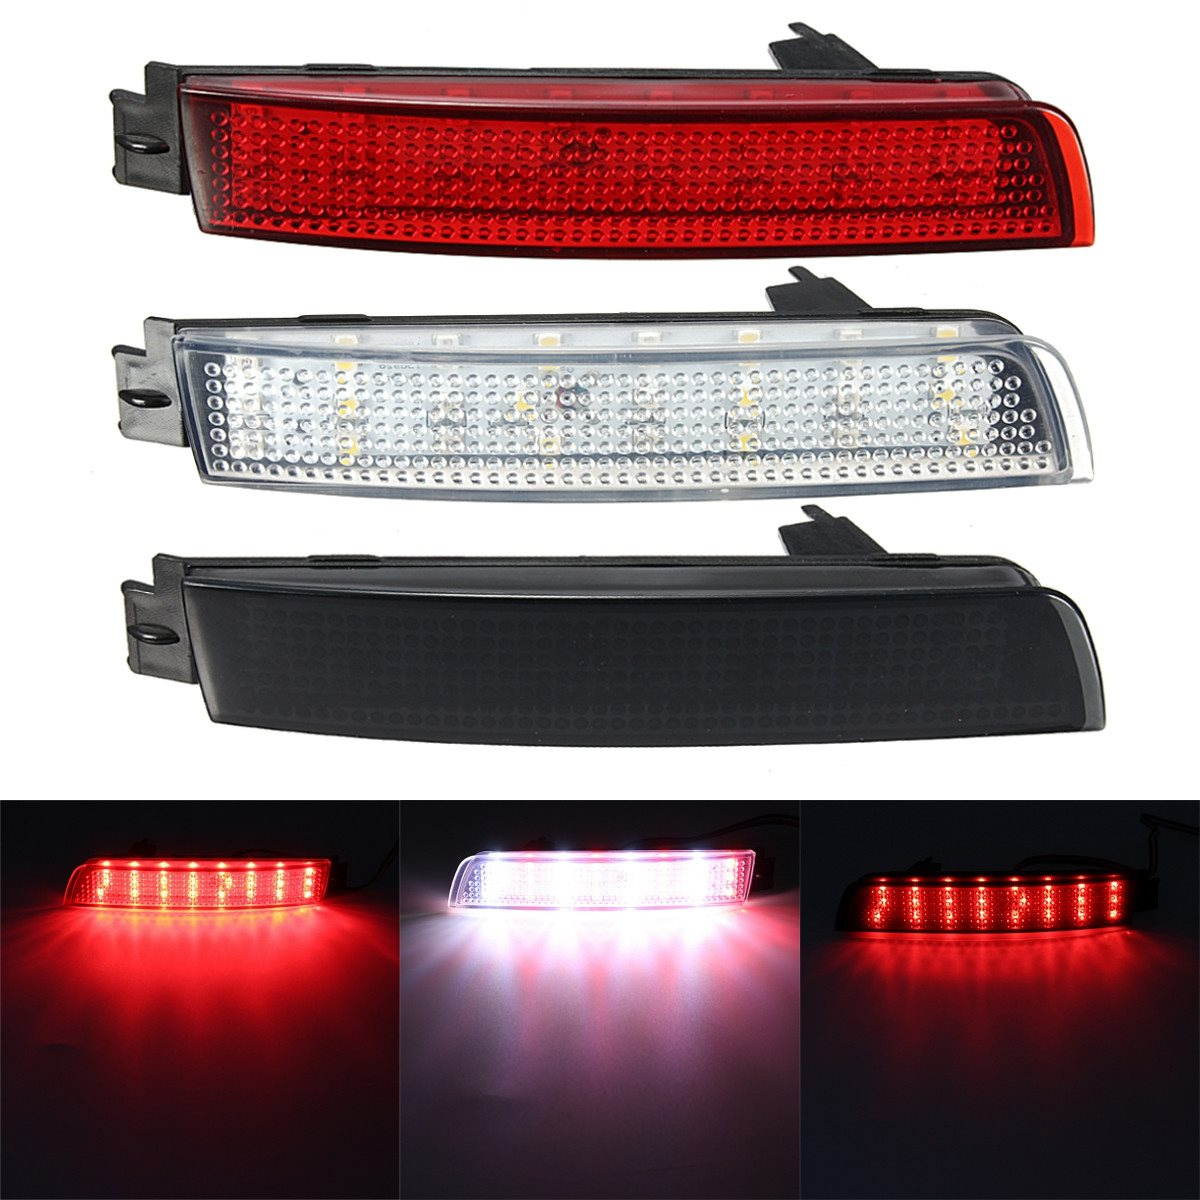 2 PCS LED Bumper Reflector Red lens Tail Brake Light Lamp For Nissan Juke/Murano/Infiniti FX35/FX37/FX50 rear bumper reflector light for nissan juke murano sentra quest infiniti fx35 fx37 fx50 led red fog parking brake tail lamp